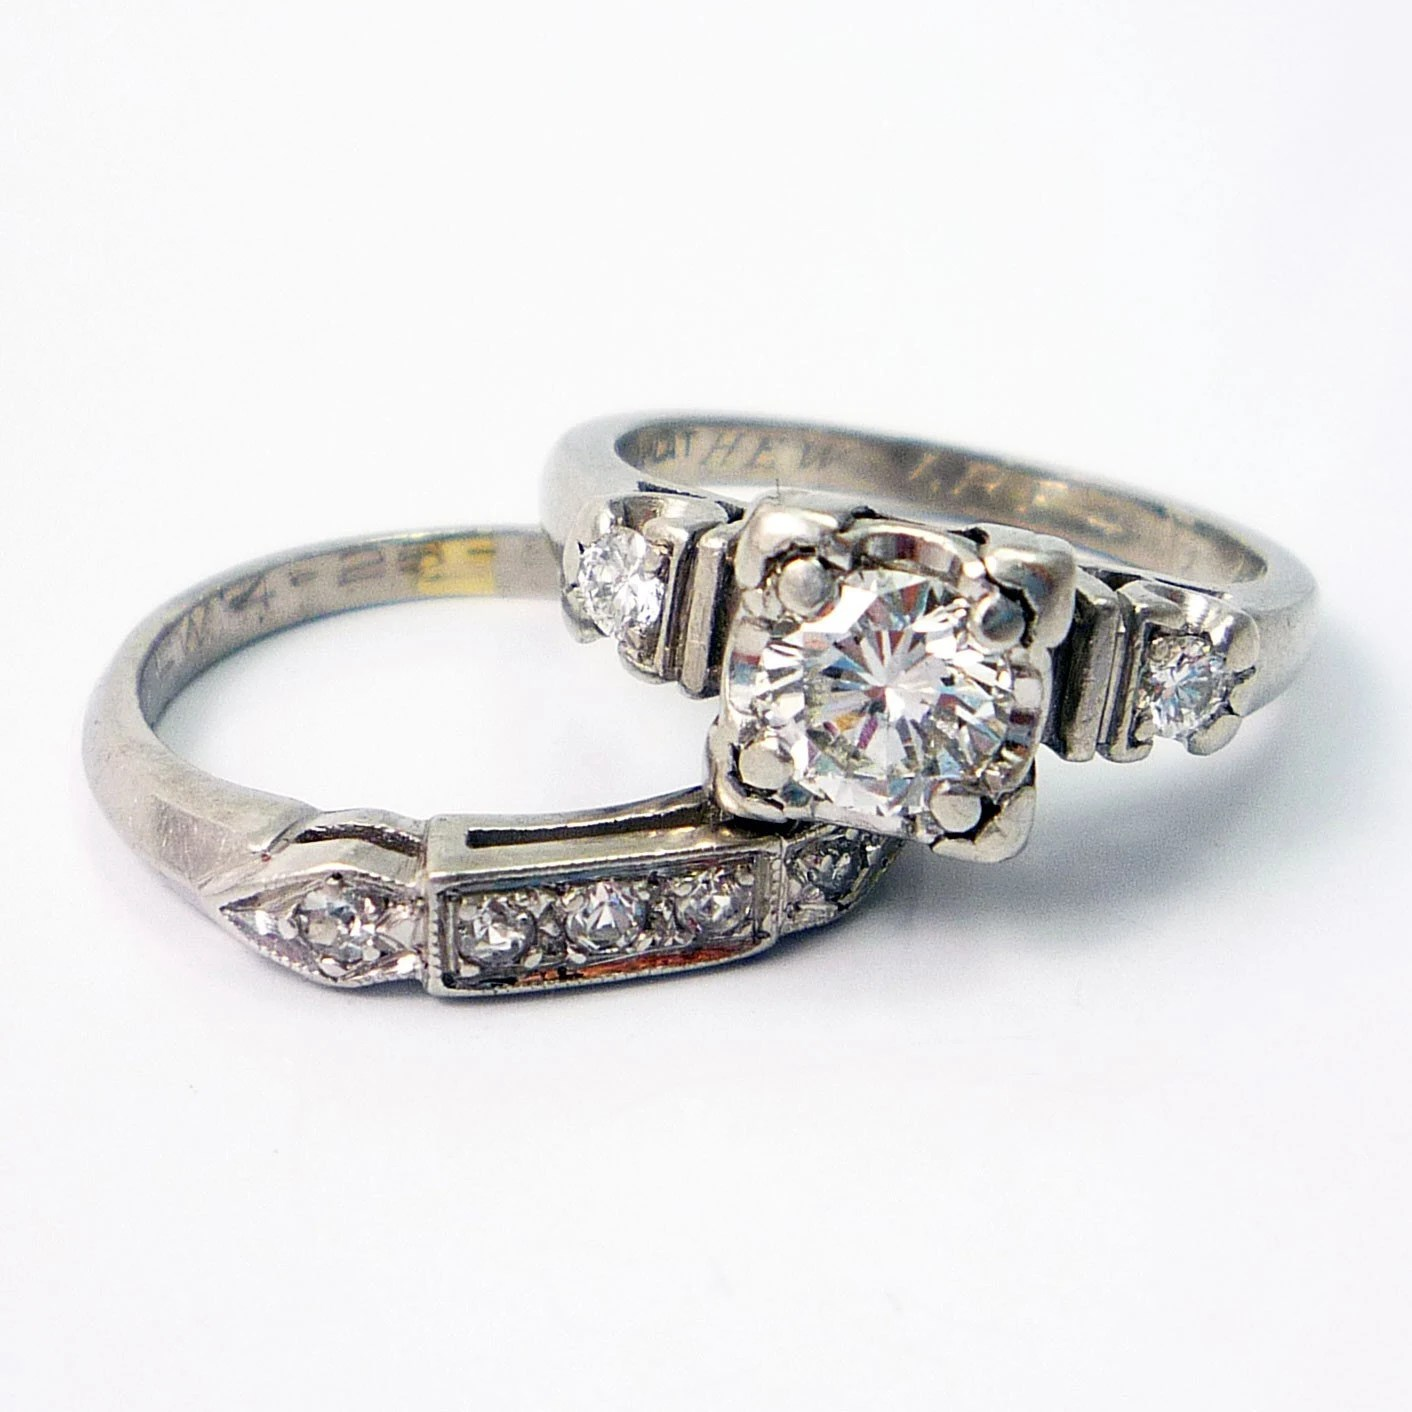 old fashioned wedding ring sets antique wedding ring sets Old fashioned wedding ring sets Retro s Diamond Engagement Wedding Ring Band Set Zoom